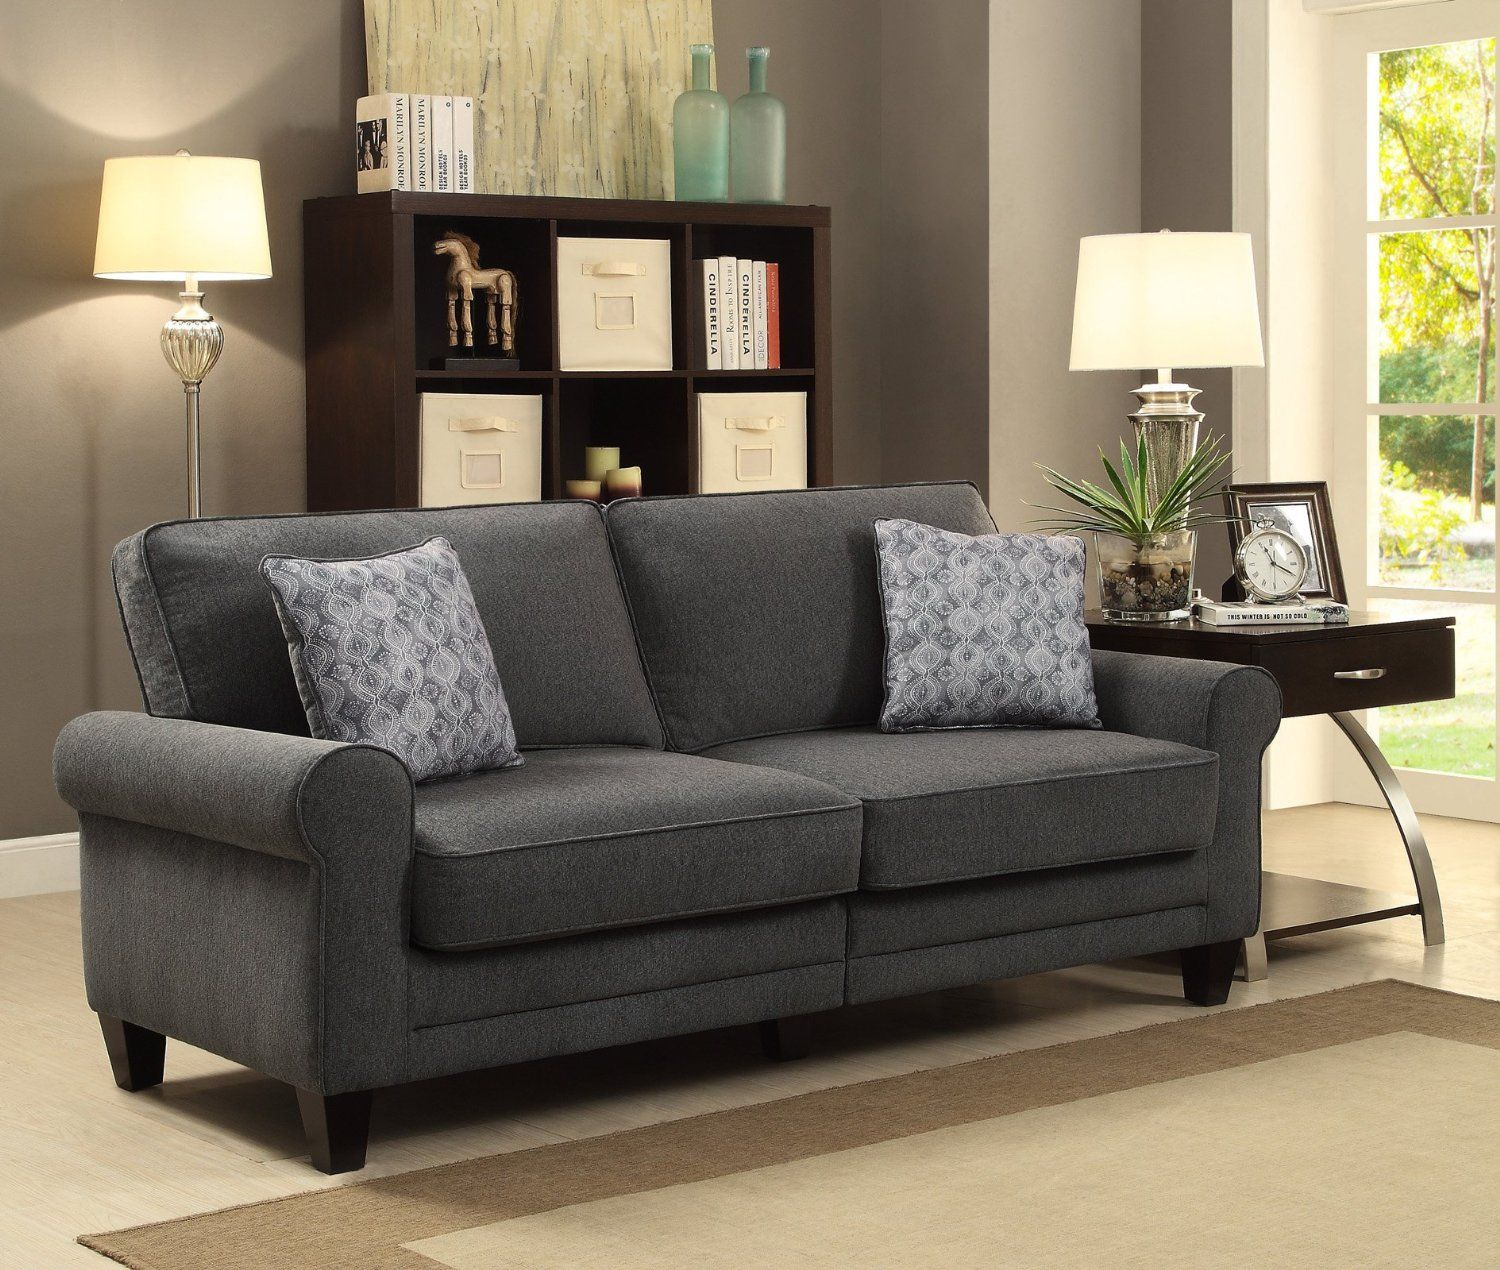 Amazon Sofa Bed Grey Serta At Home Cr46222pb Rta Somerset Collection 73 Inch Fabric